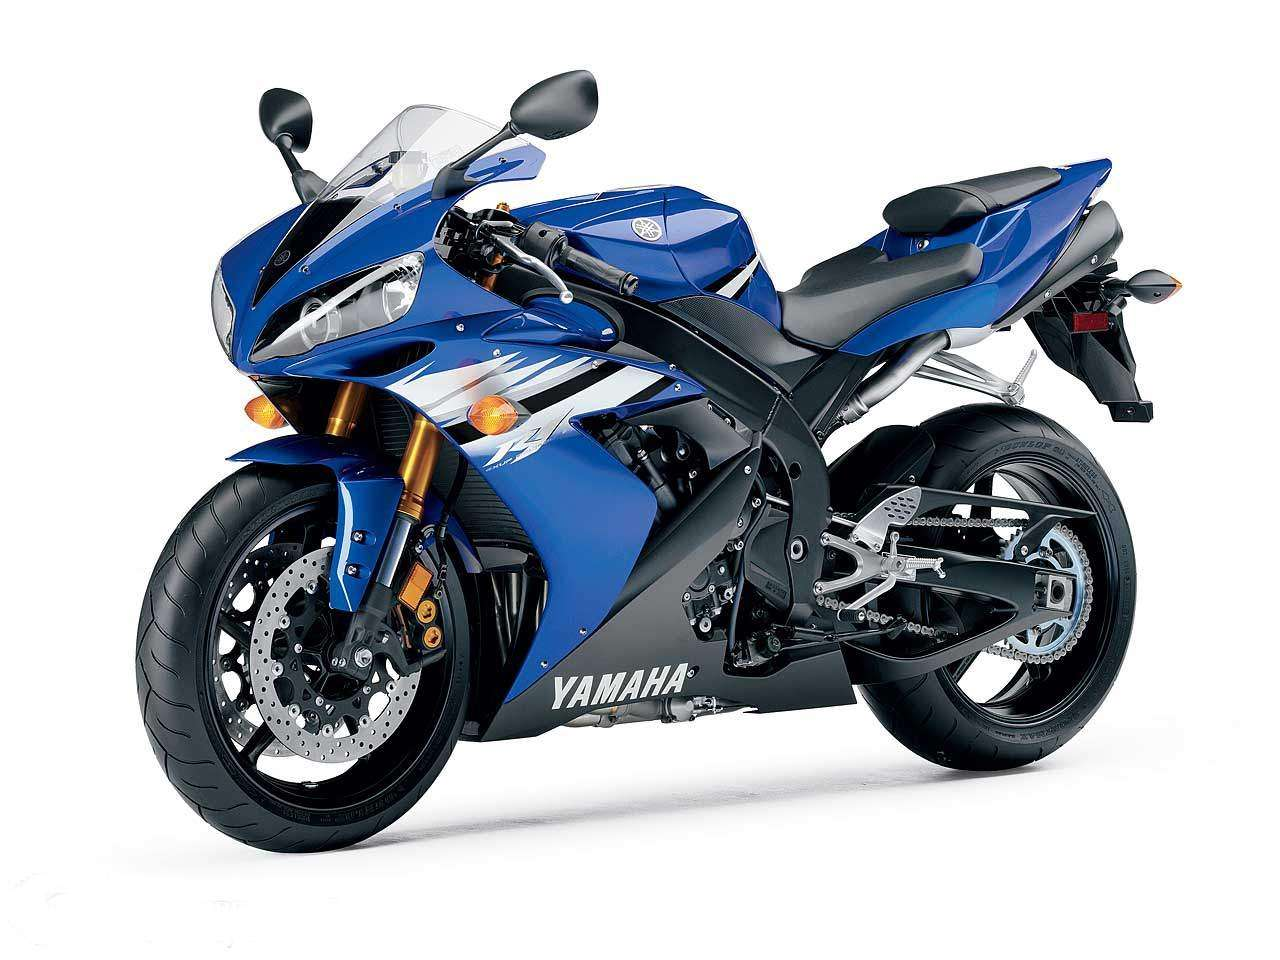 yamaha r1 blue bike - photo #38